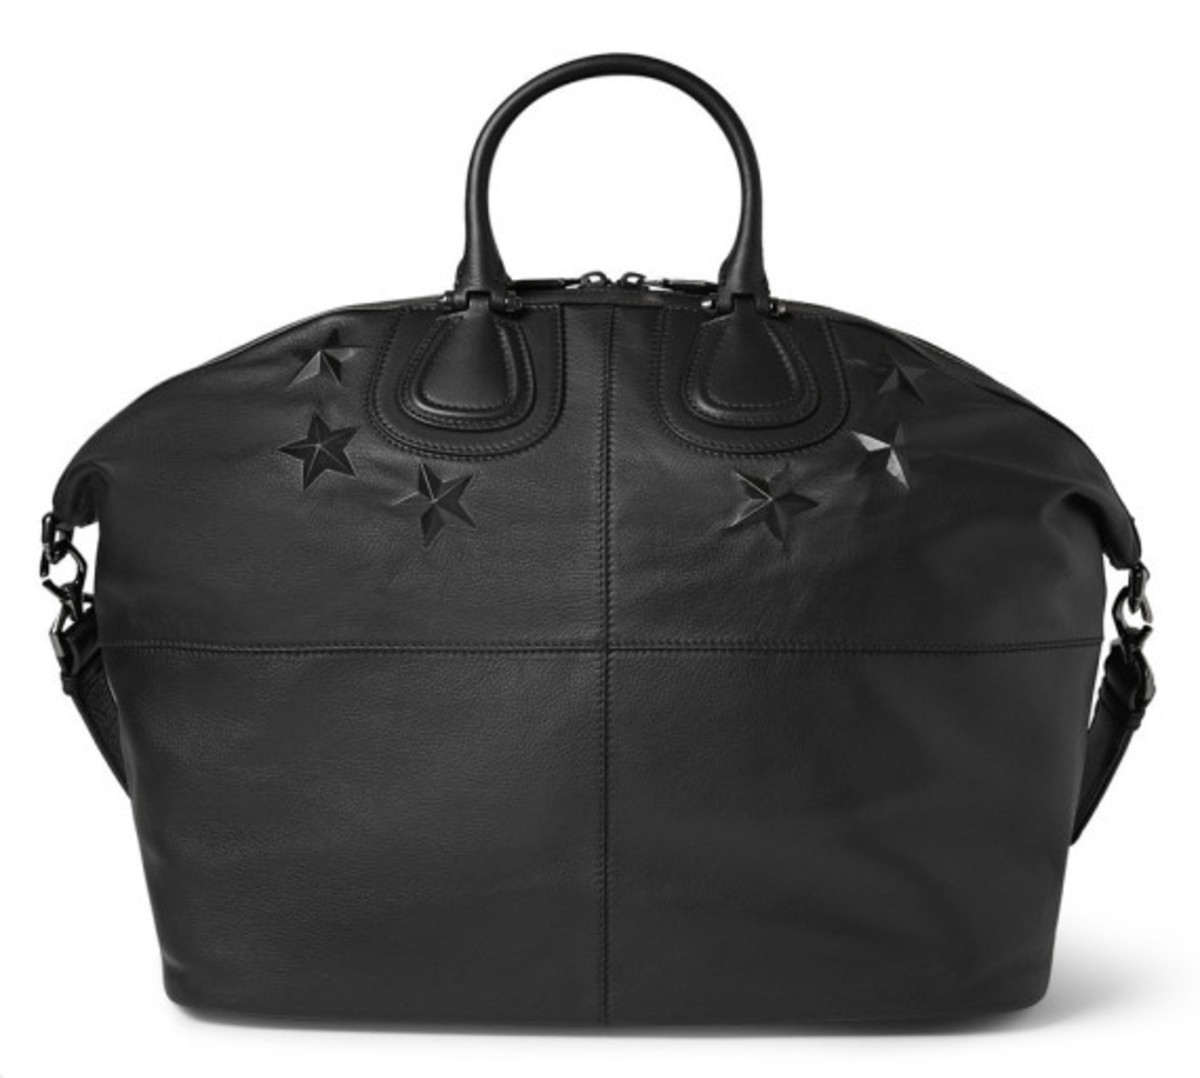 givenchy-star-embossed-leather-nightingale-tote-05